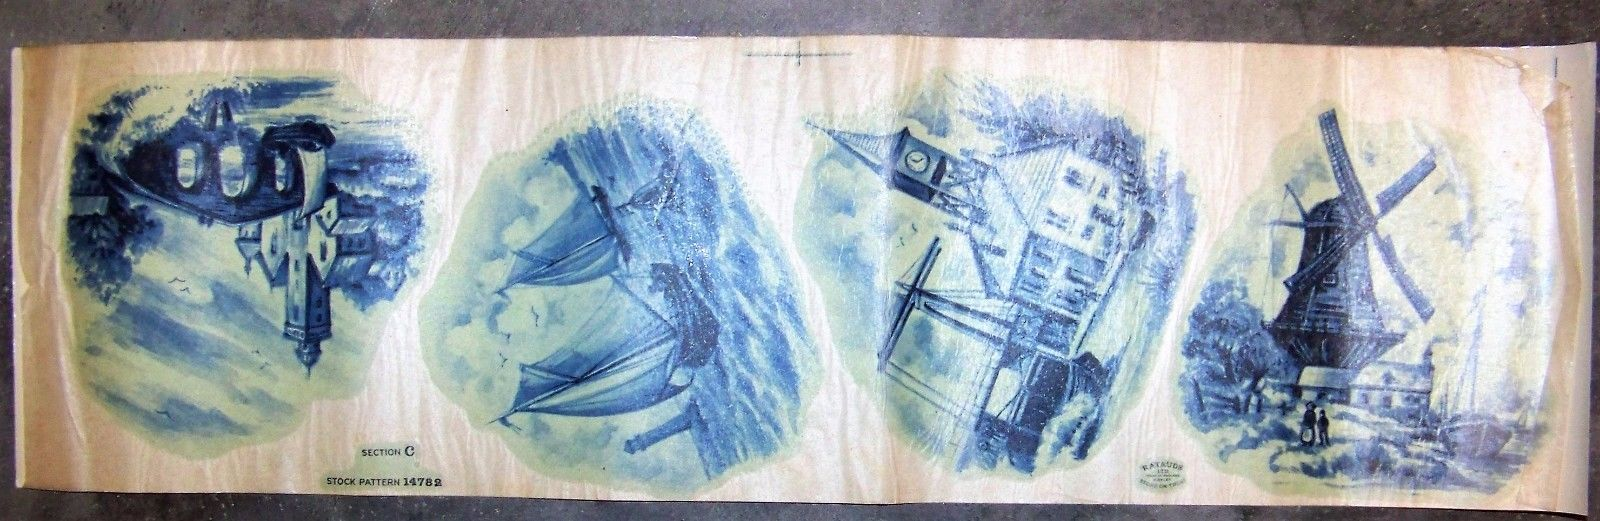 Ceramic Waterslide Decal Blue and White Made in England Ratauds